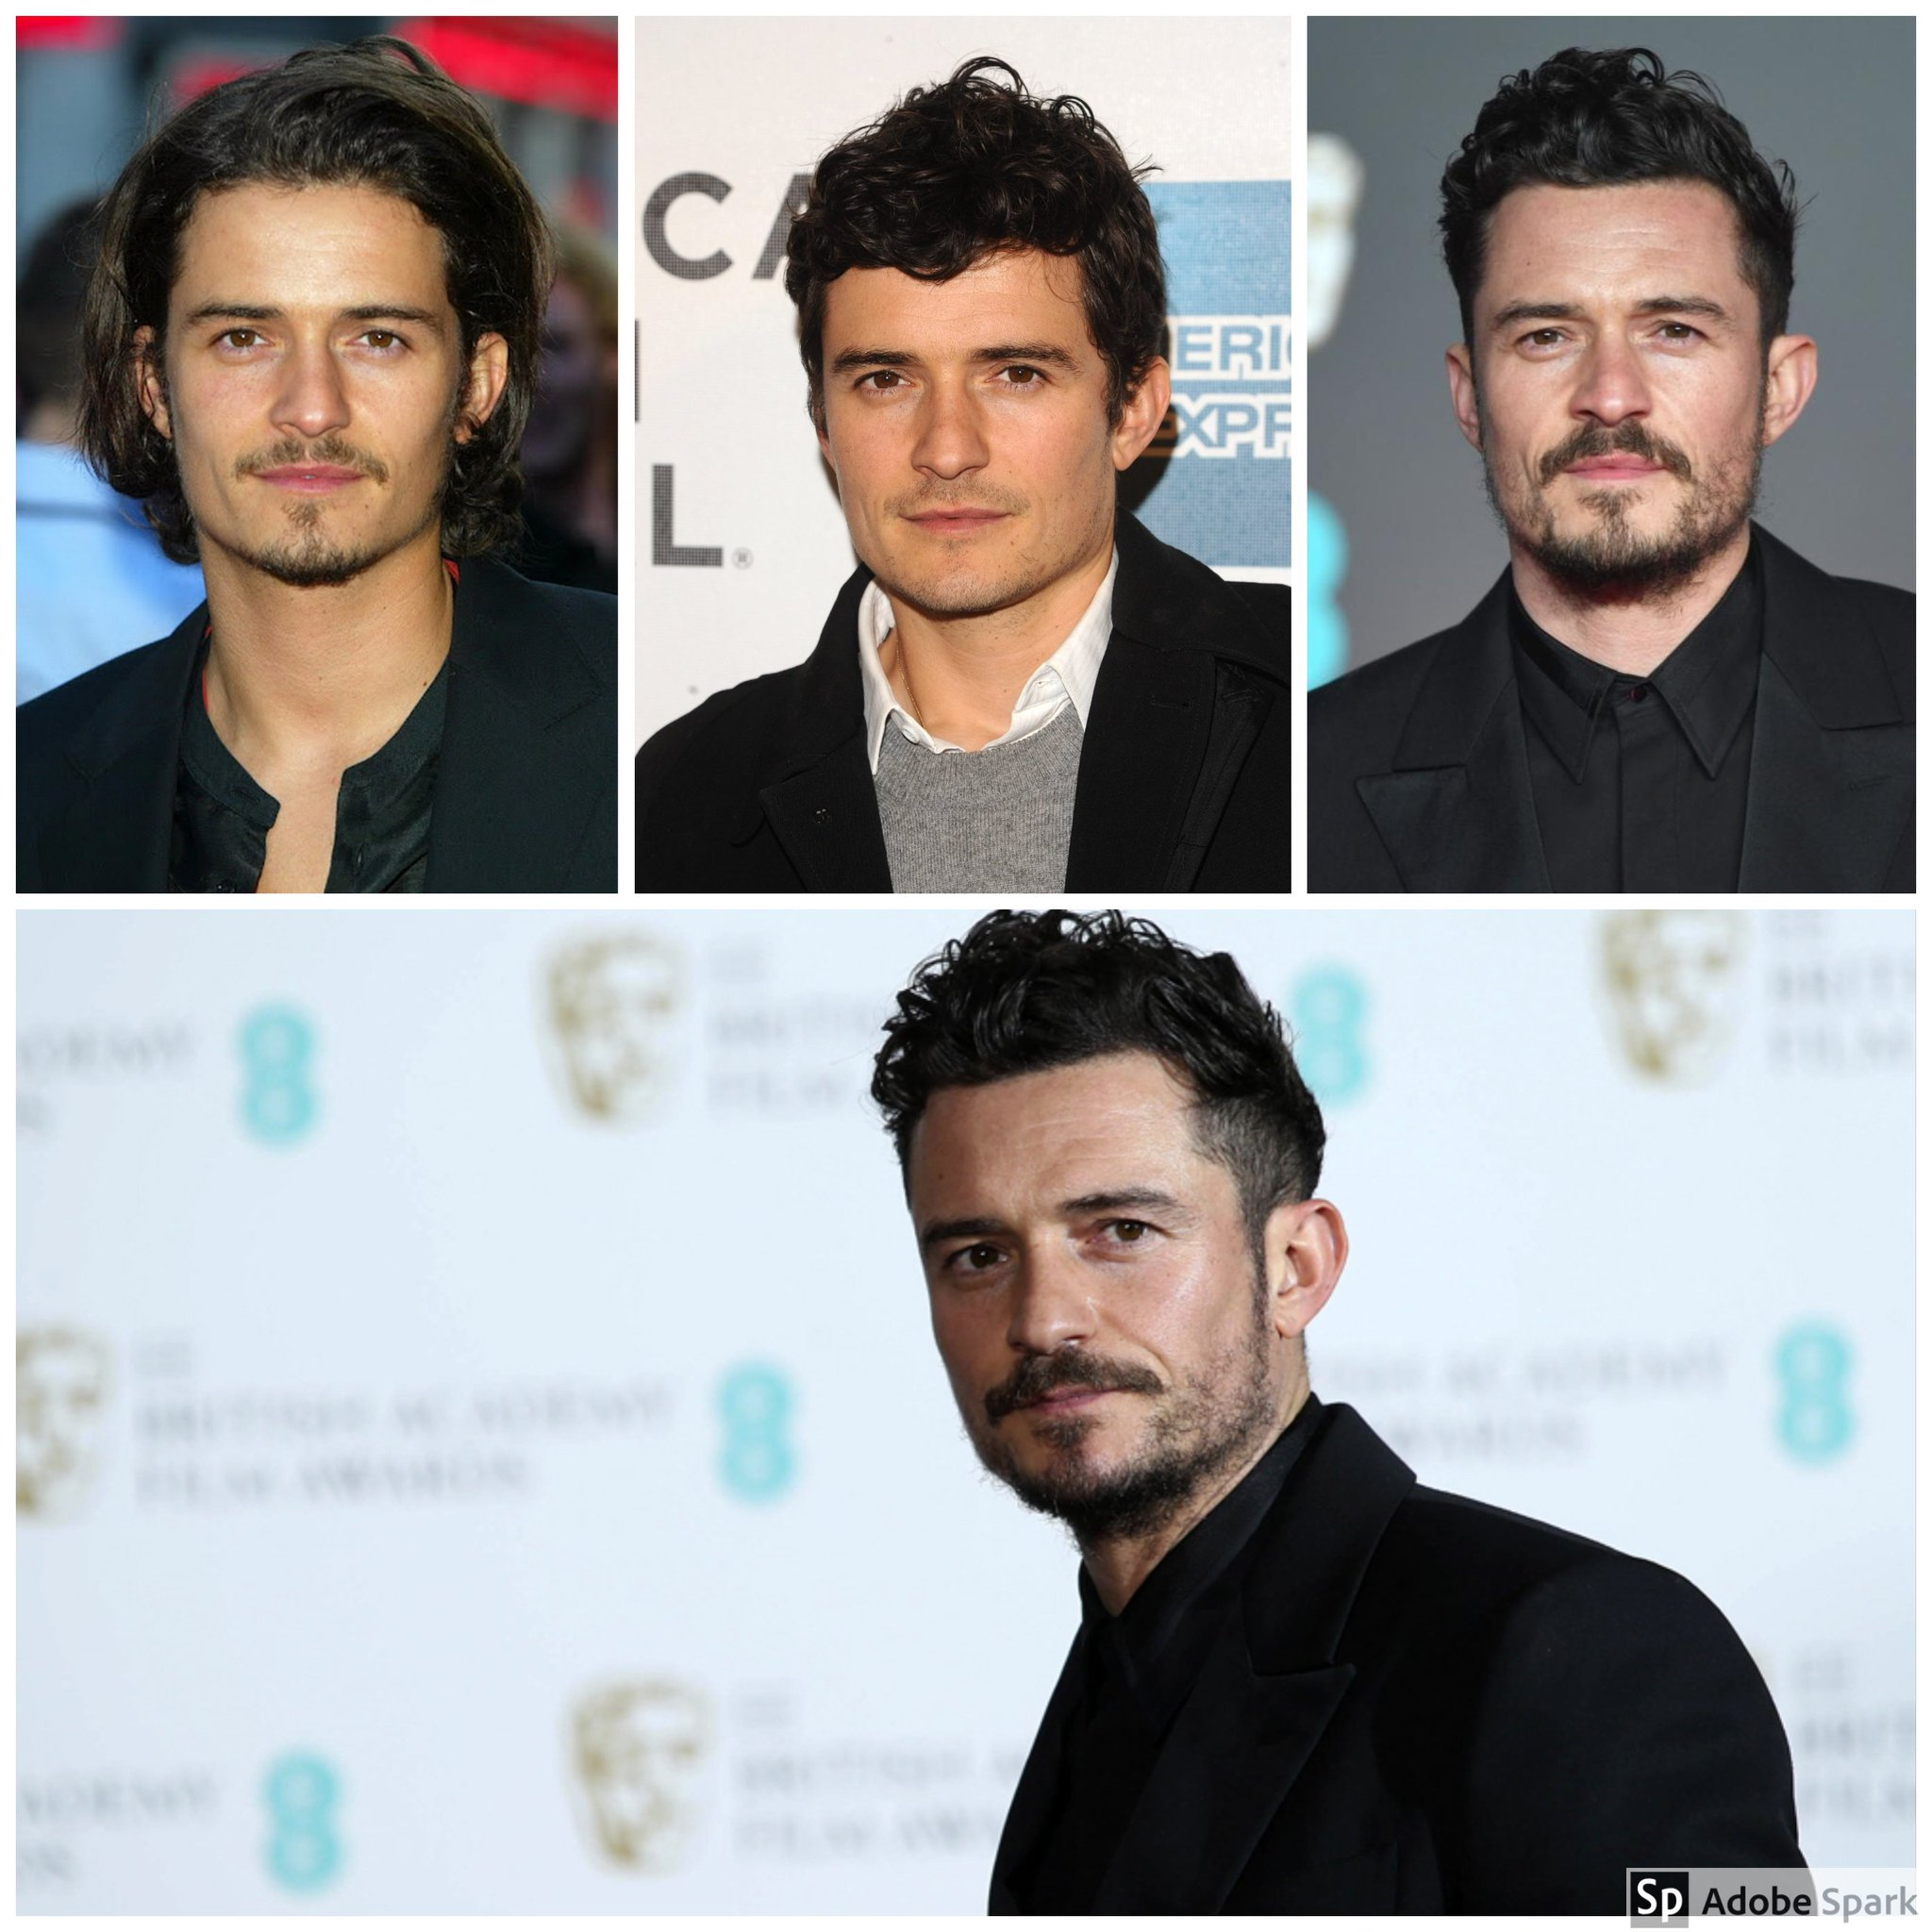 A very happy birthday to Orlando Bloom from